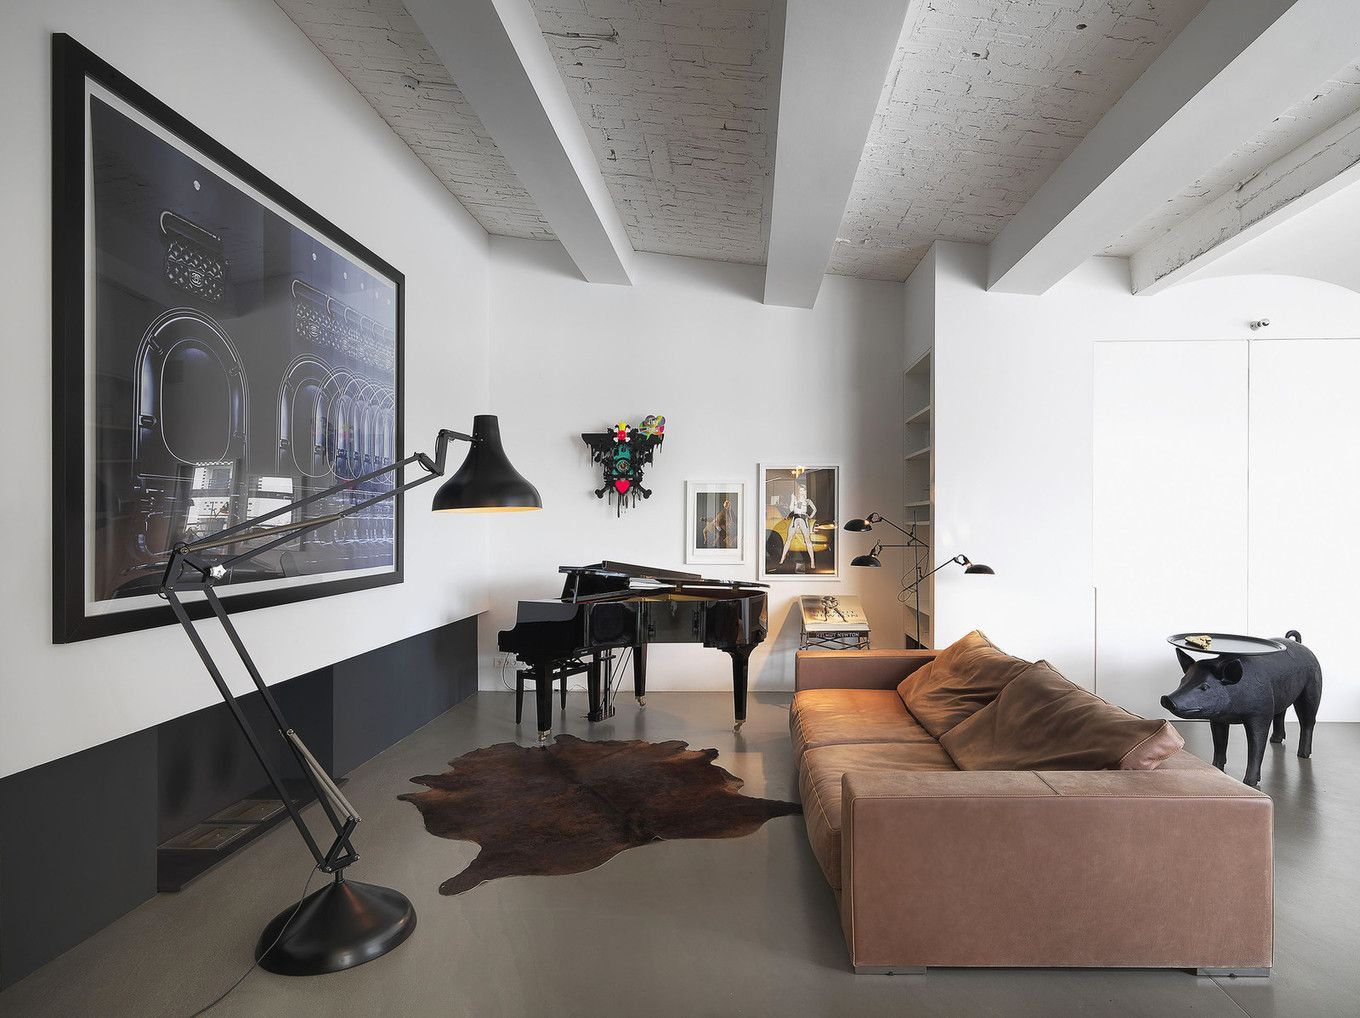 Living Room Furniture Trends 2016. Unusual contrasting design solutions of the spacious room with contrasting lamps